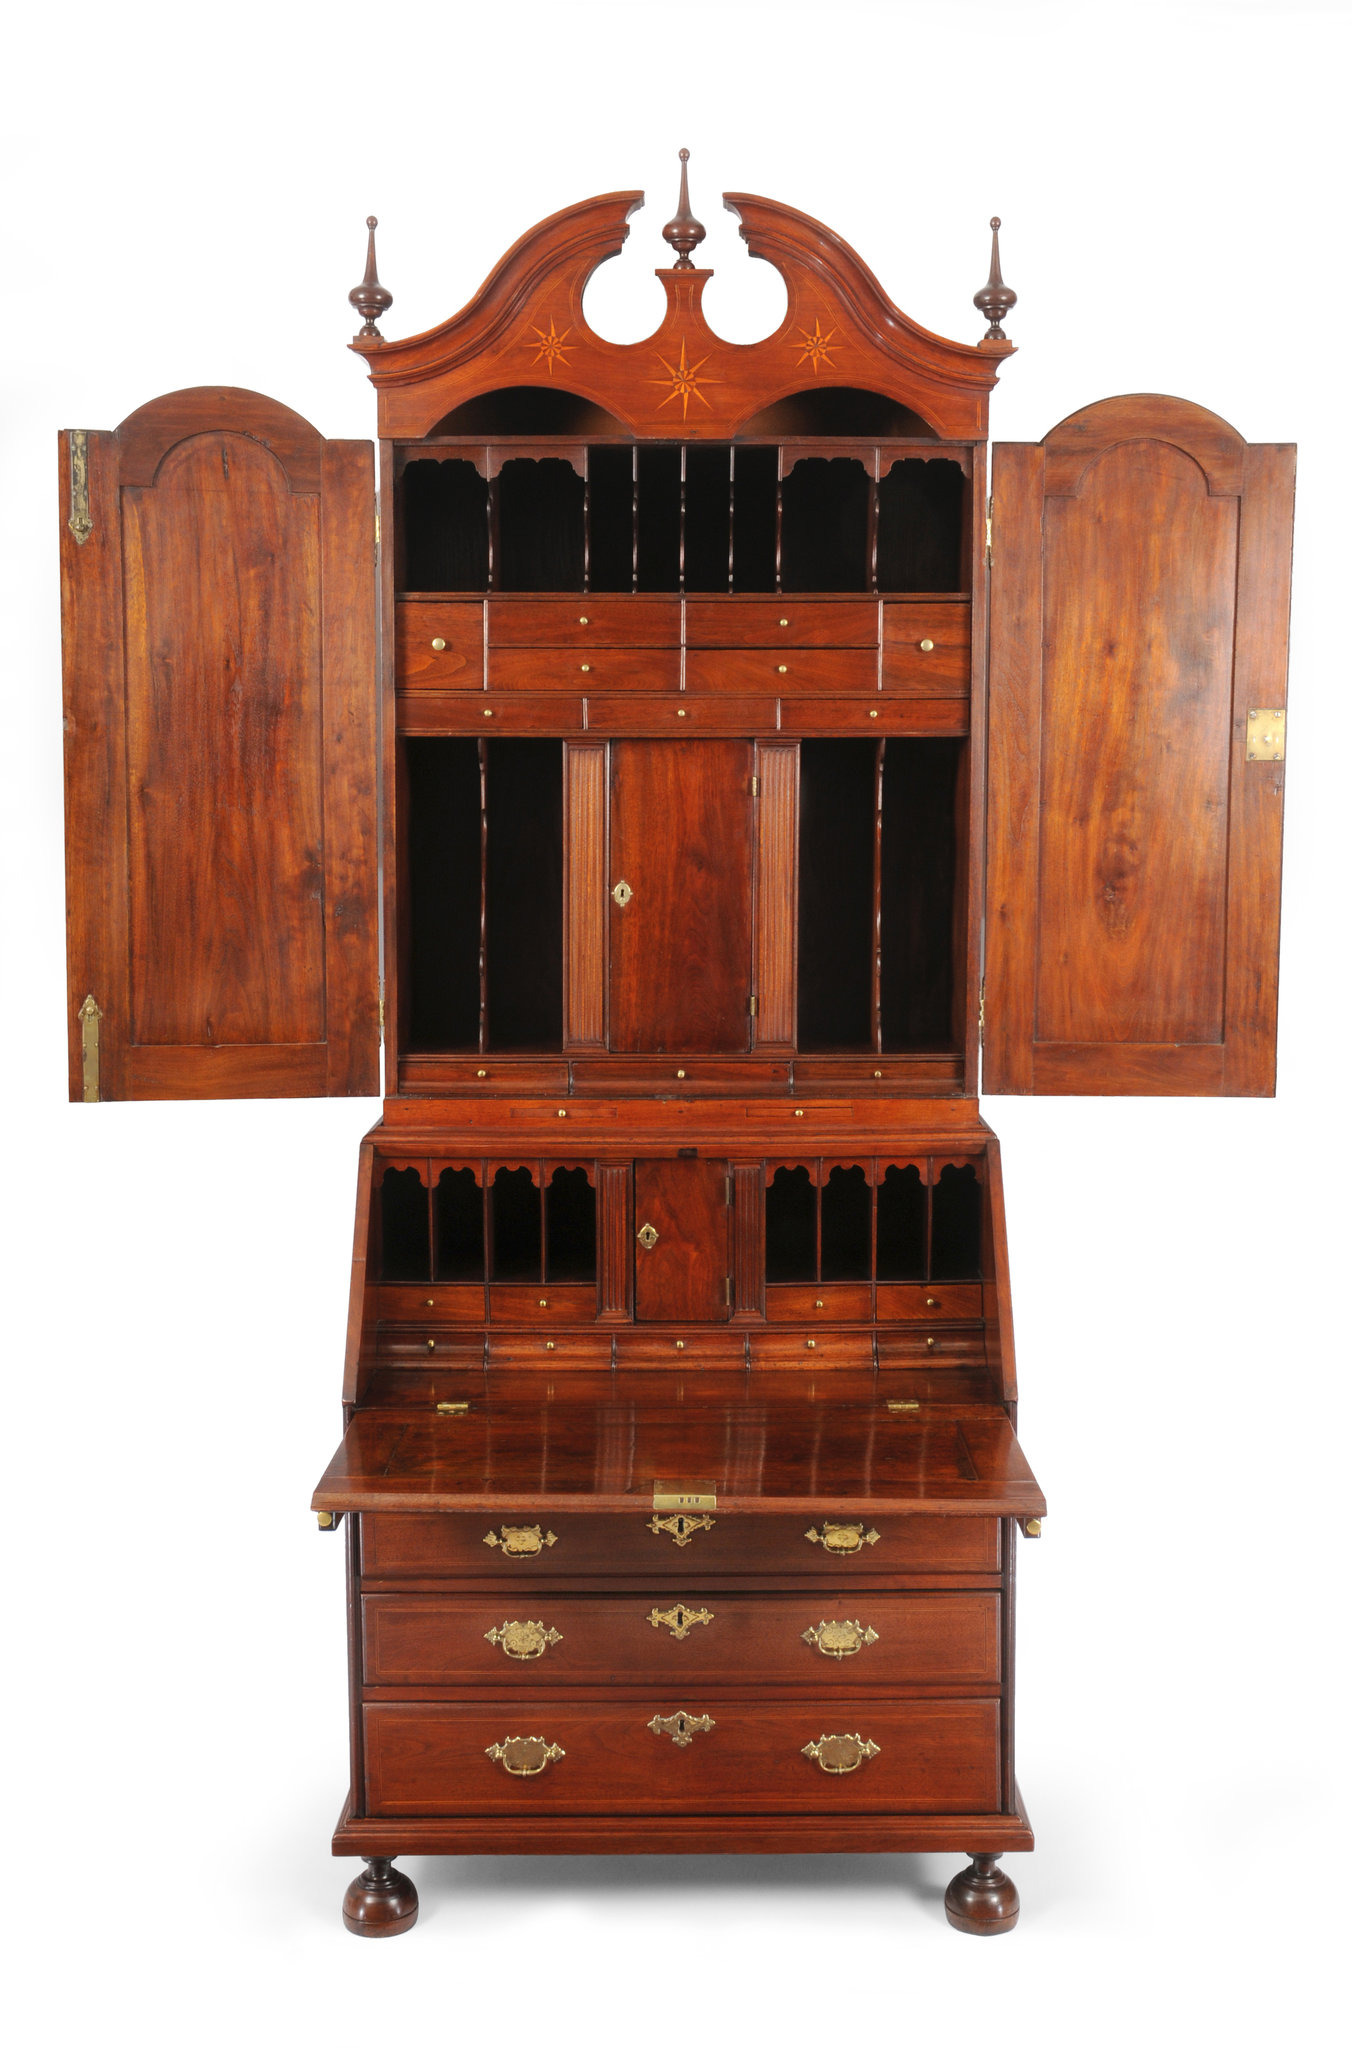 Antique Furniture Makers List Inspirational the Smallest State Has A Rich History Of Furniture Makers